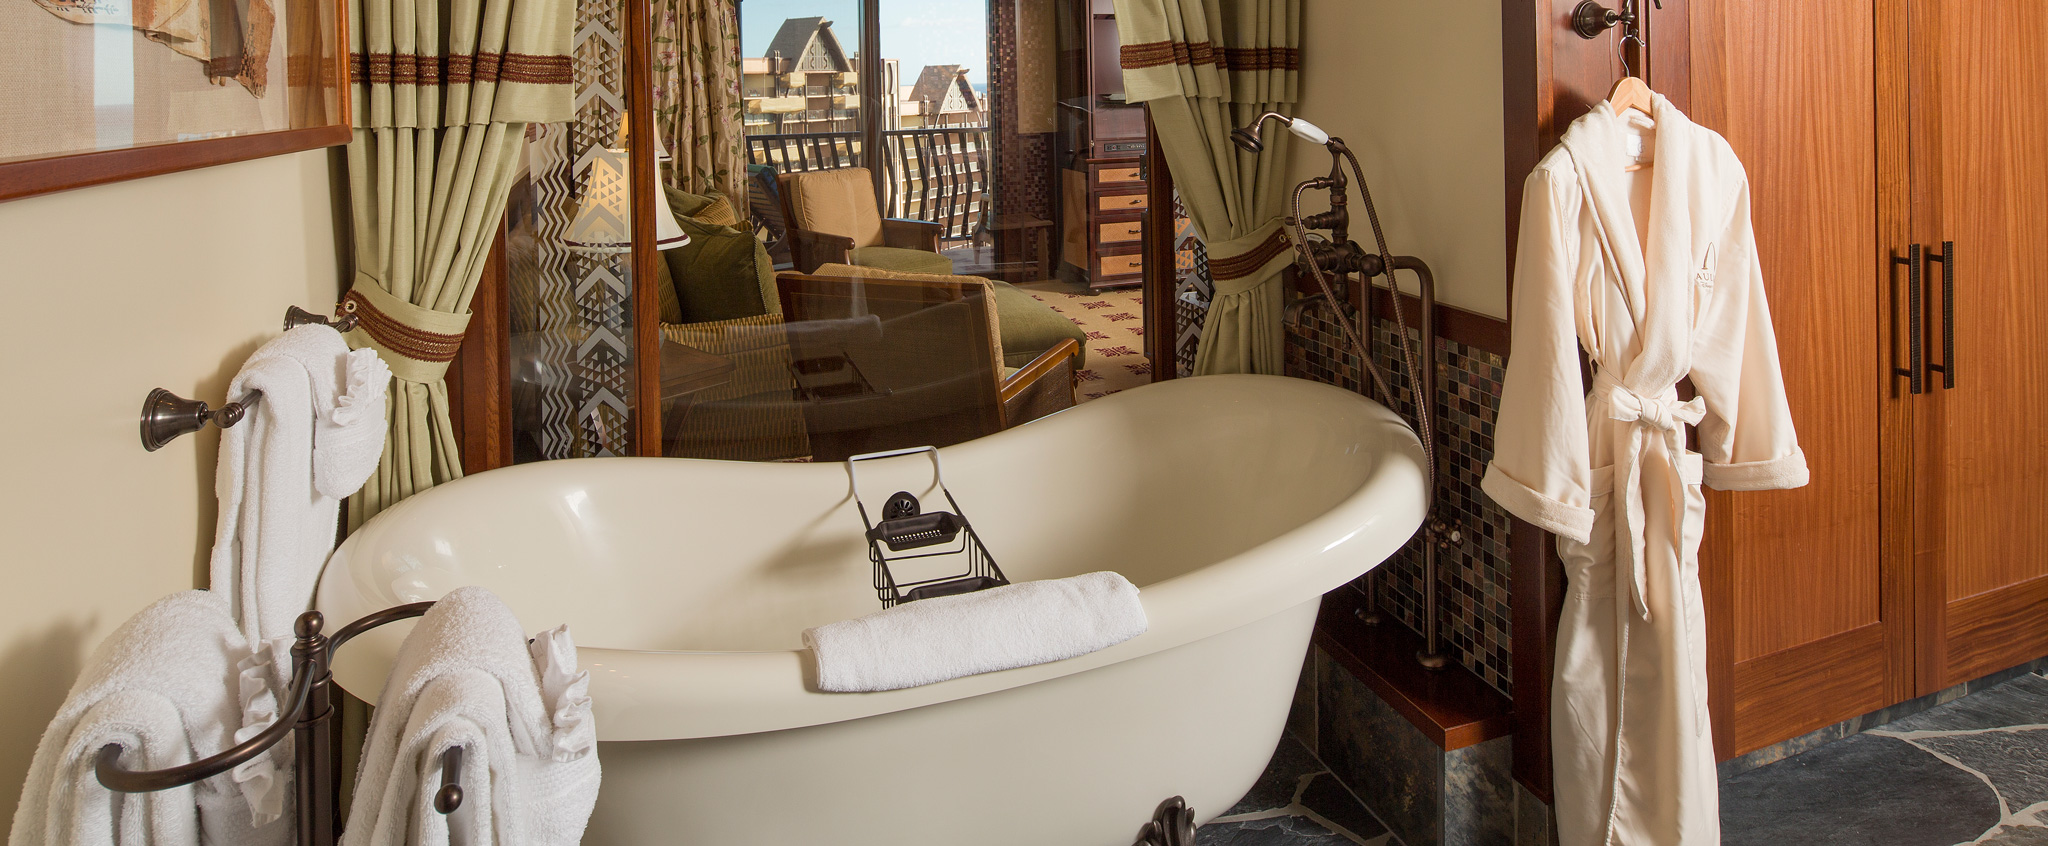 A bathrobe hangs next to a large claw foot tub in the 2-Bedroom Suite bathroom next to several towel bars